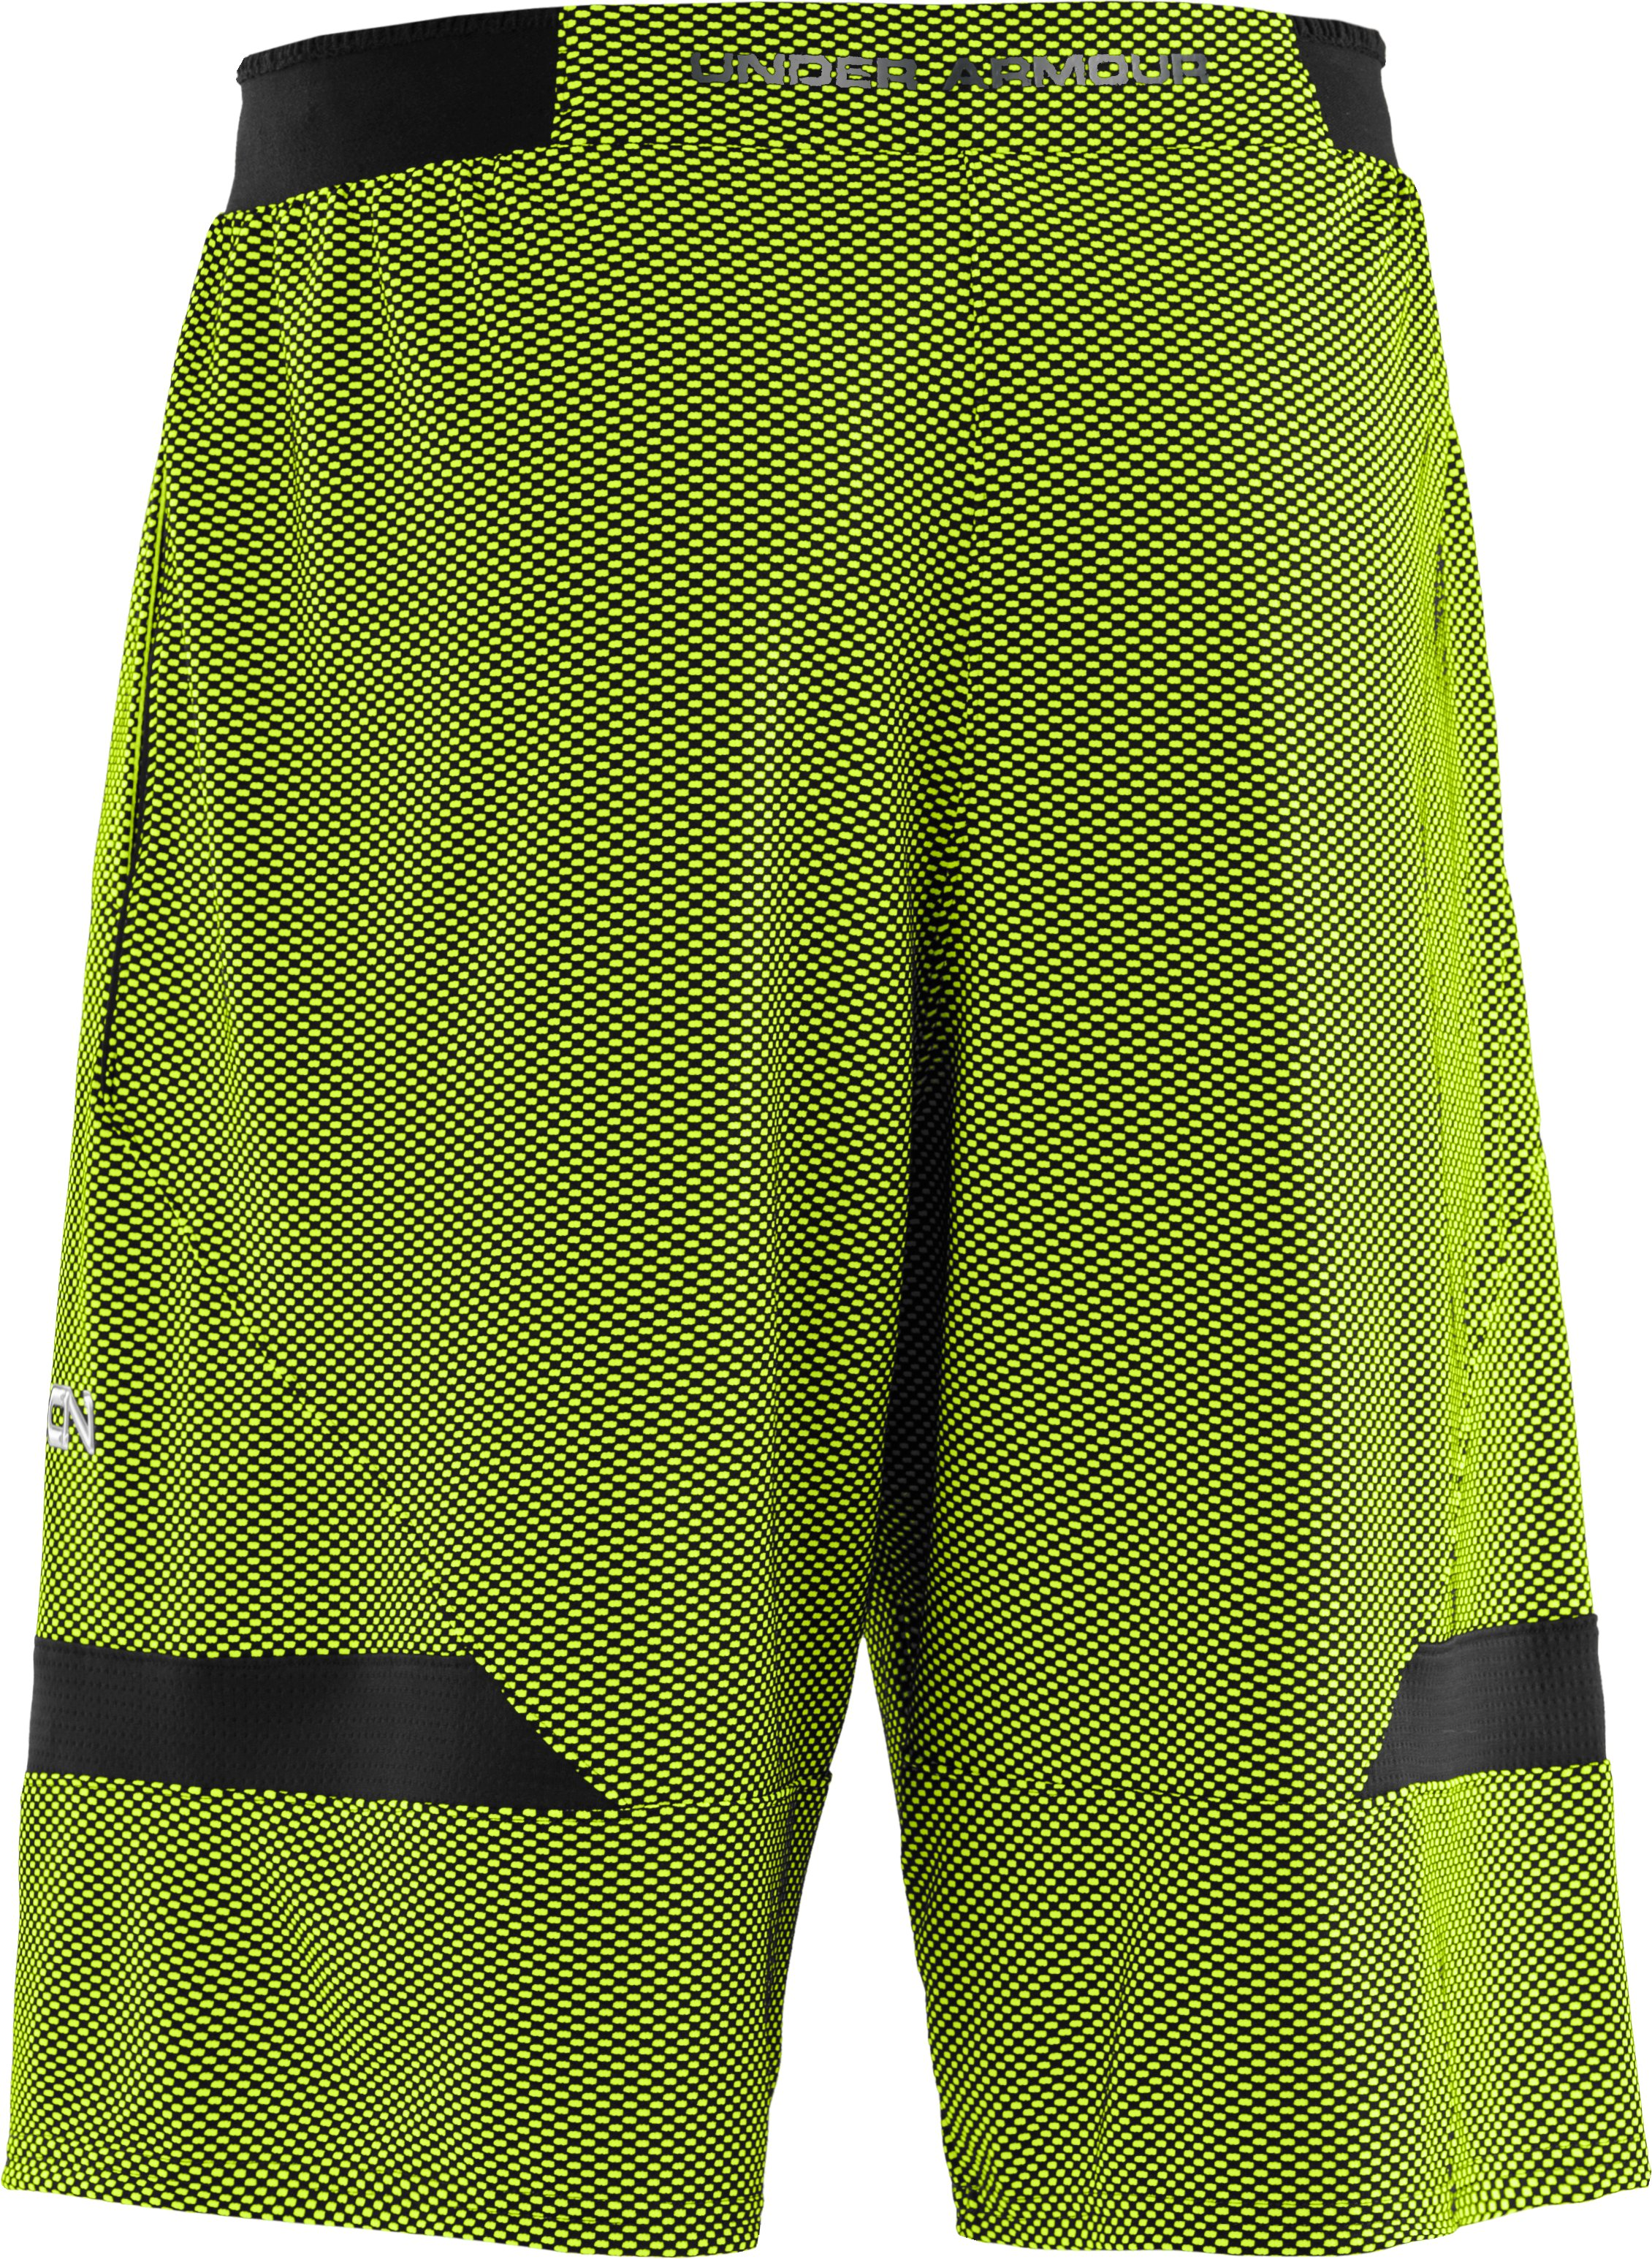 Men's C1N Da Dinosaur Shorts, High-Vis Yellow, undefined